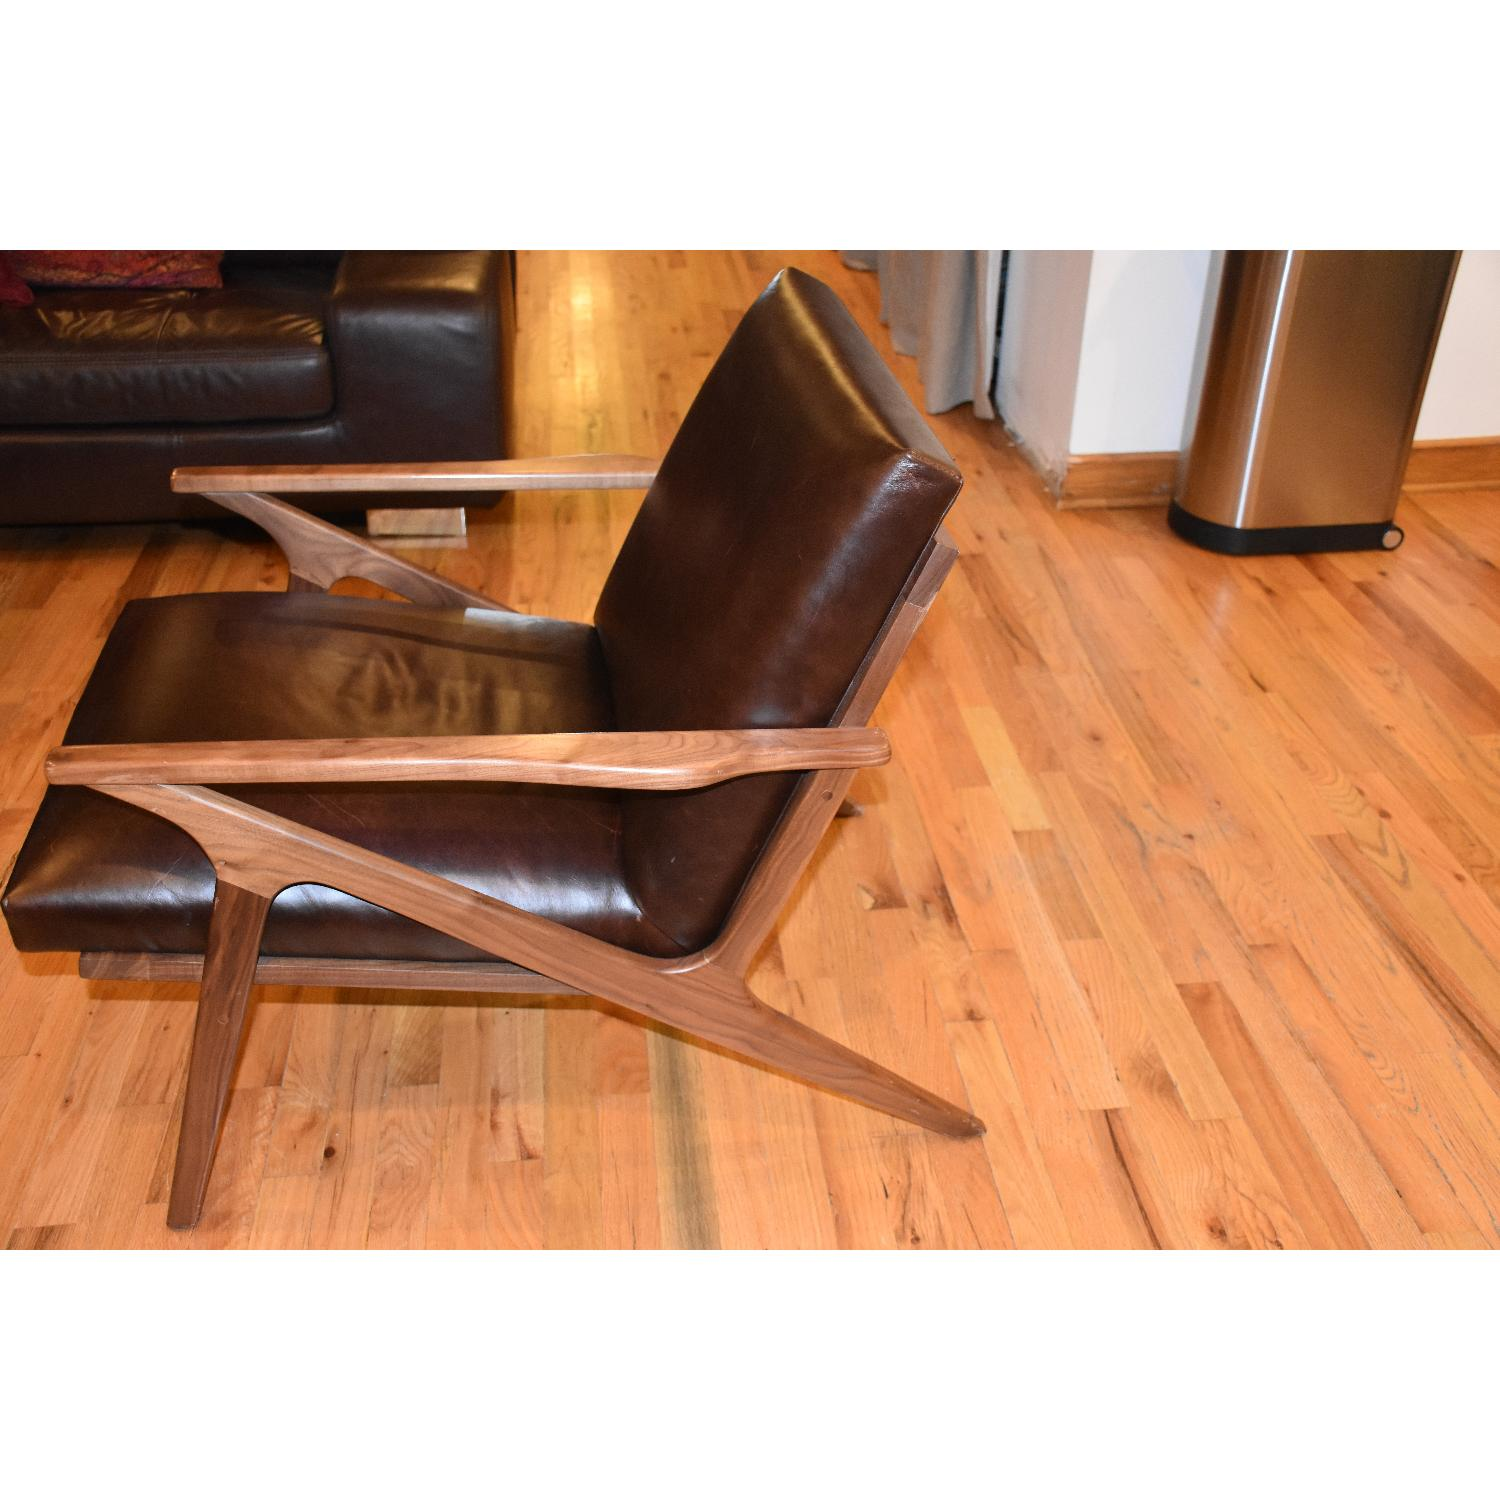 Crate & Barrel Cavett Leather Chair - image-6